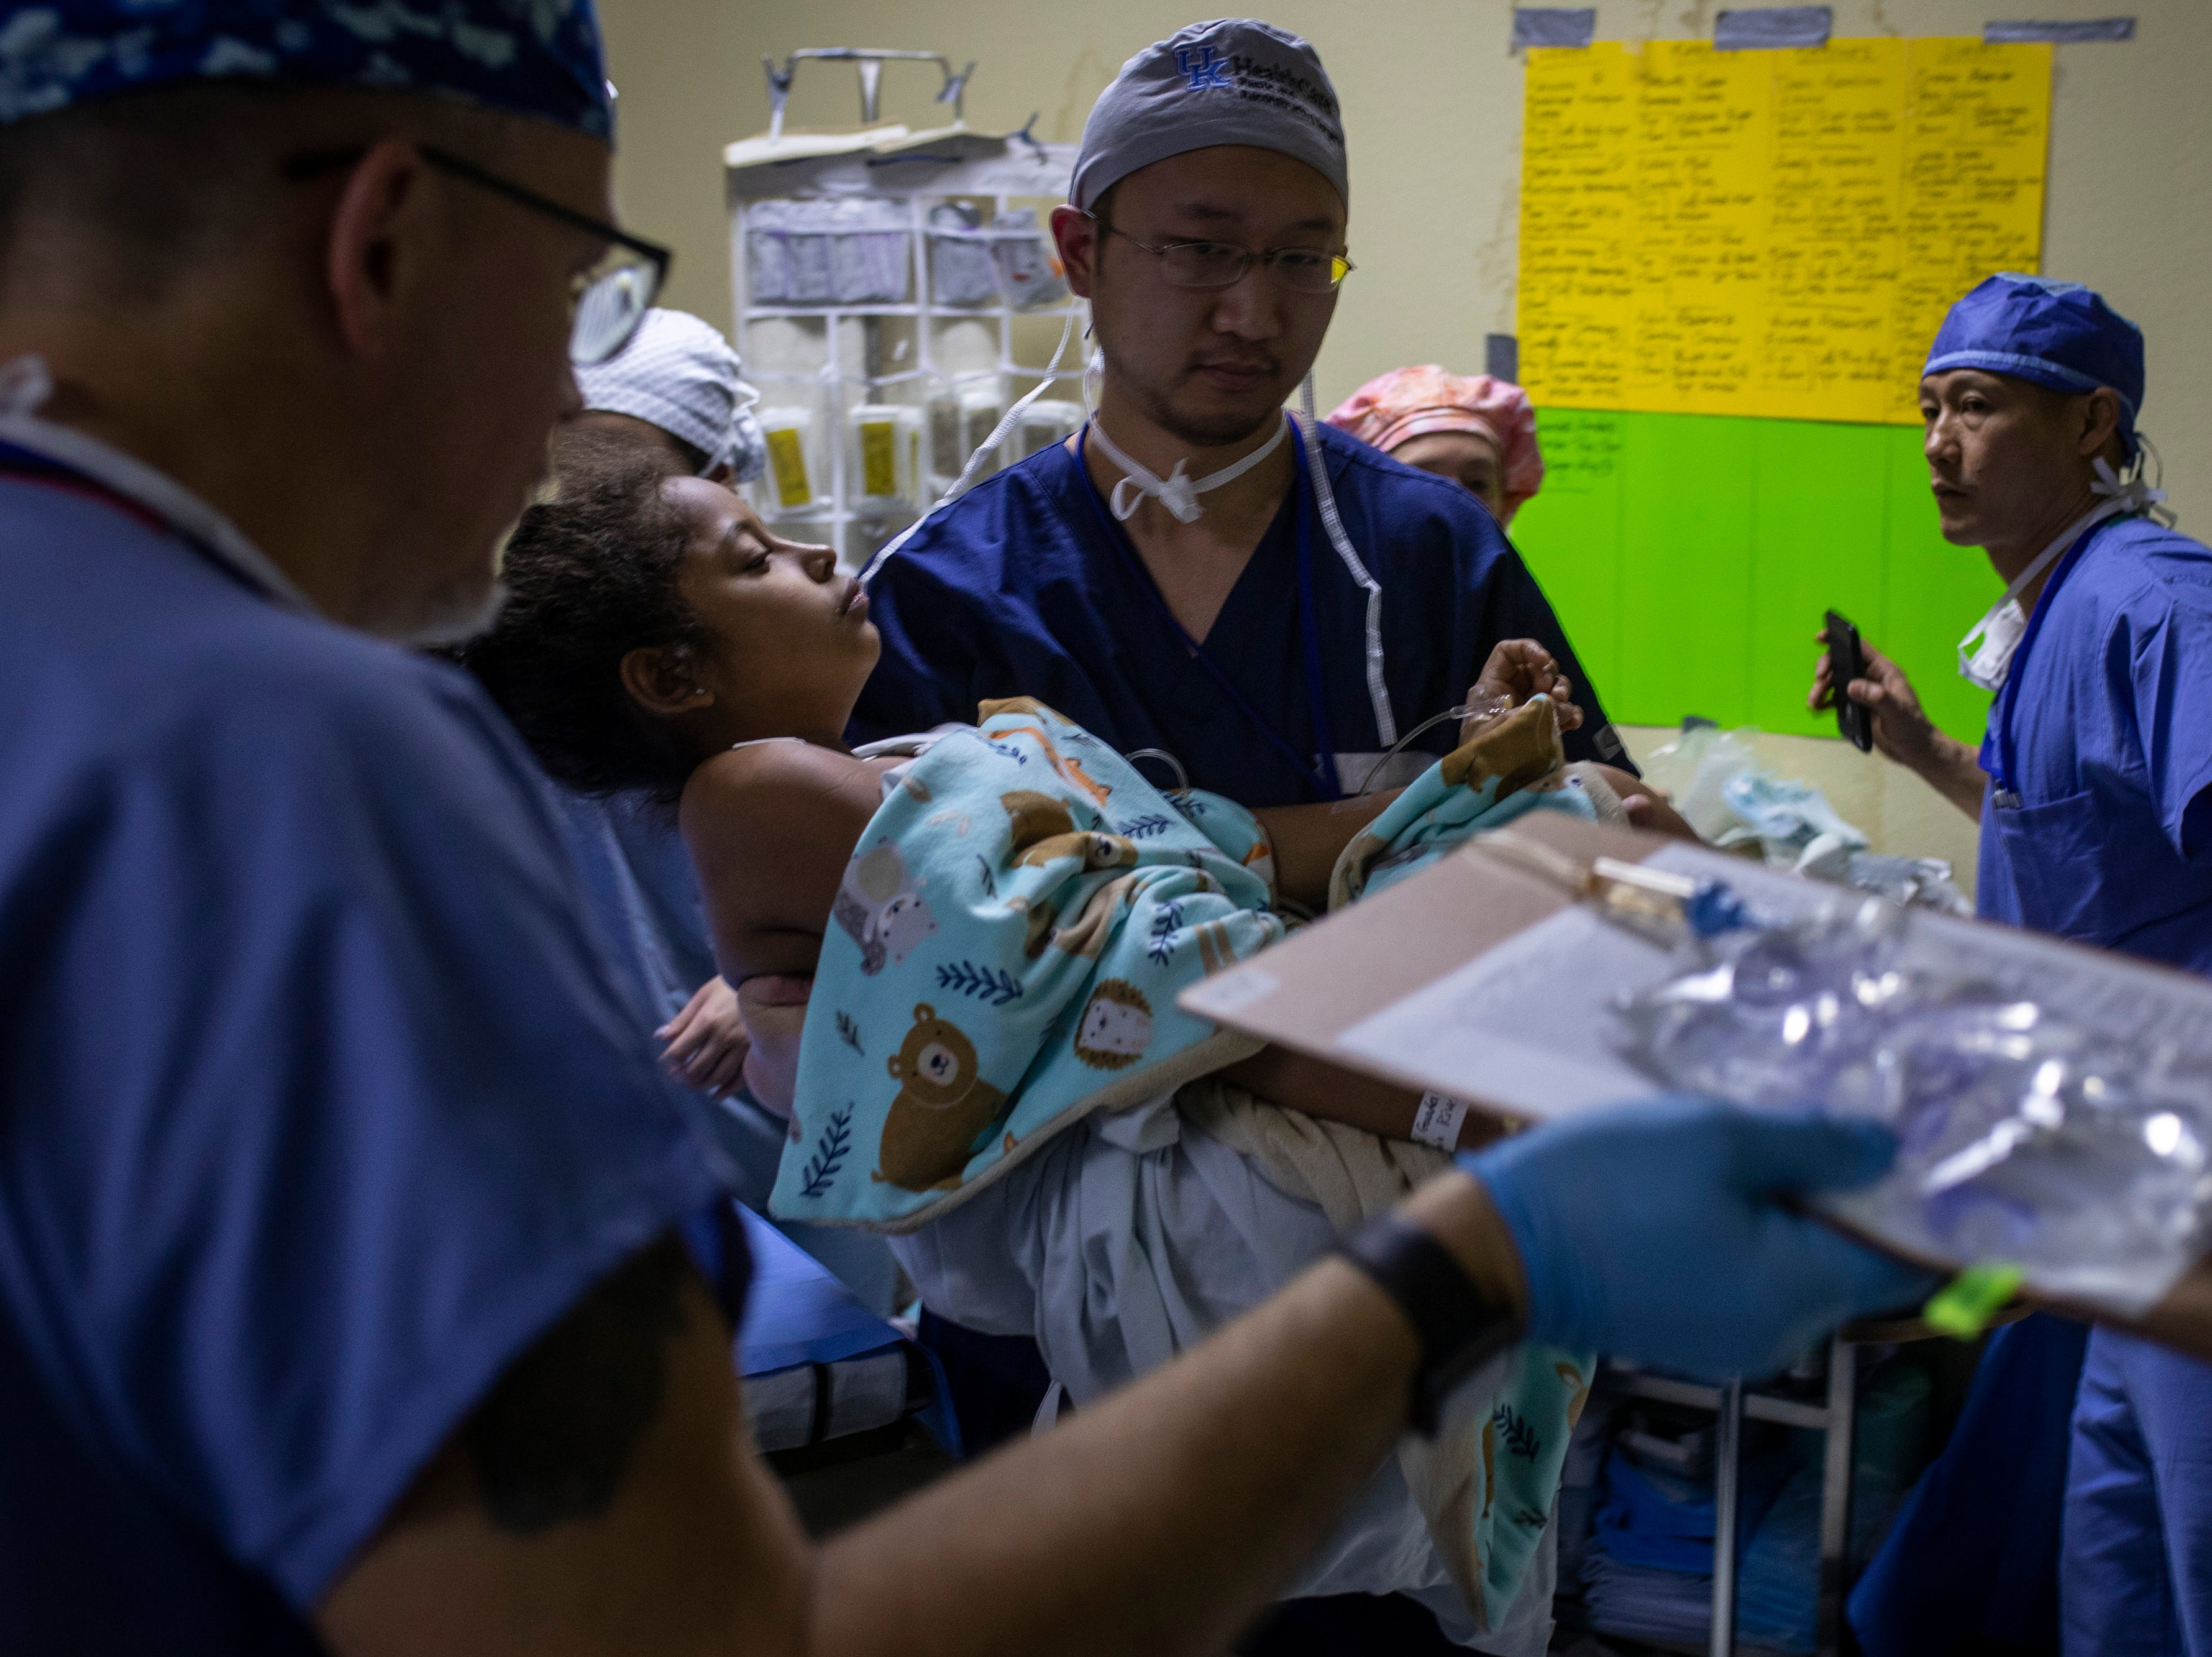 UK Hospital plastic surgery resident Duane Wang, center, carries Marangel Guadalupe Marroquin Rivera, 10, after she had a mass removed from her neck during the COTA 2019 medical mission to Salamá, Guatemala. Jan. 21, 2019